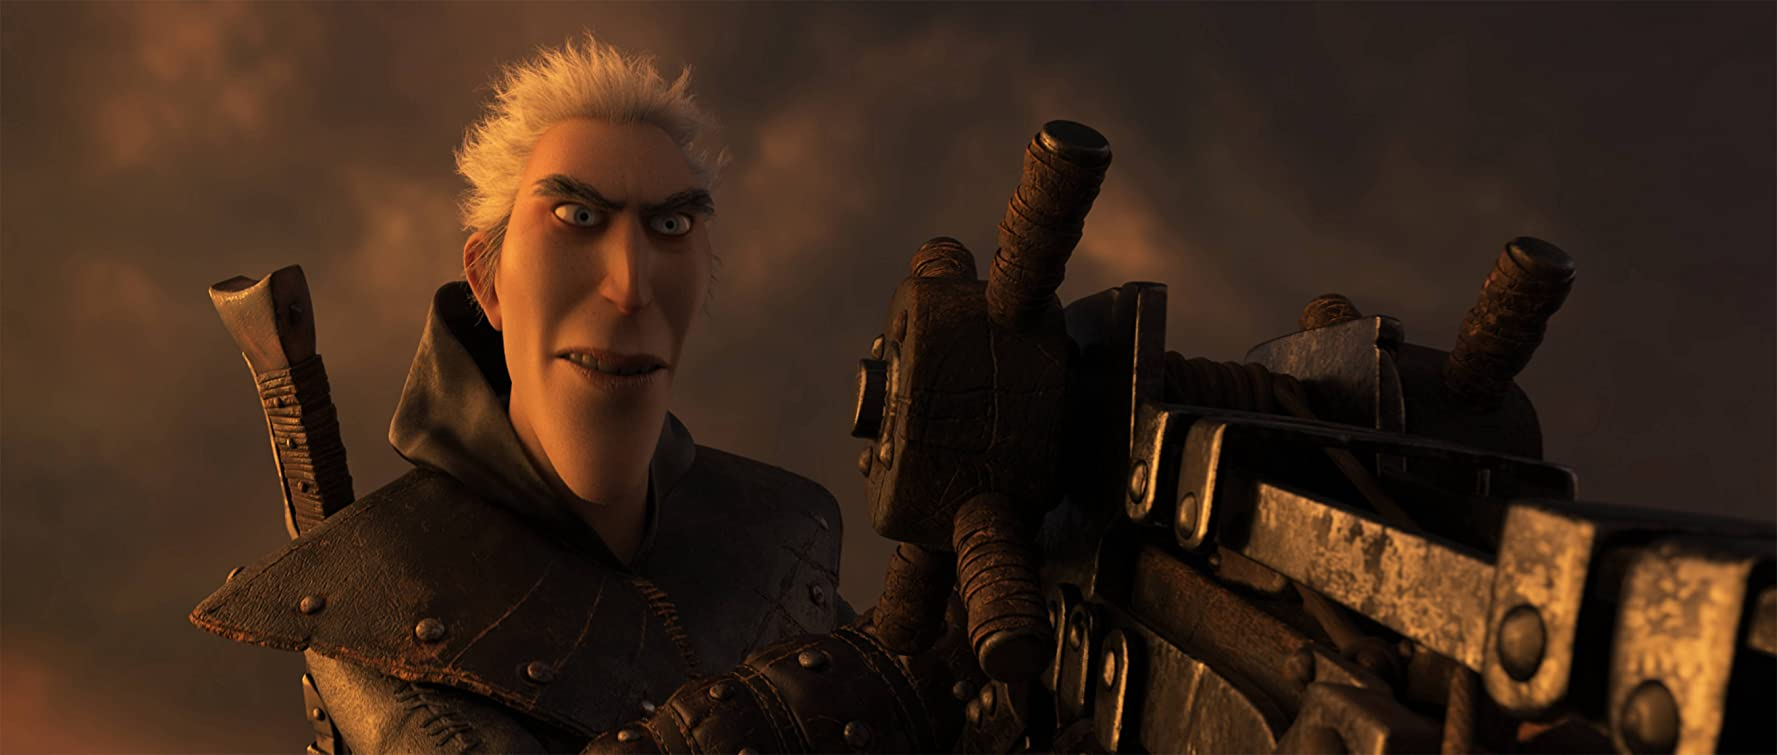 F. Murray Abraham in How to Train Your Dragon: The Hidden World (2019)